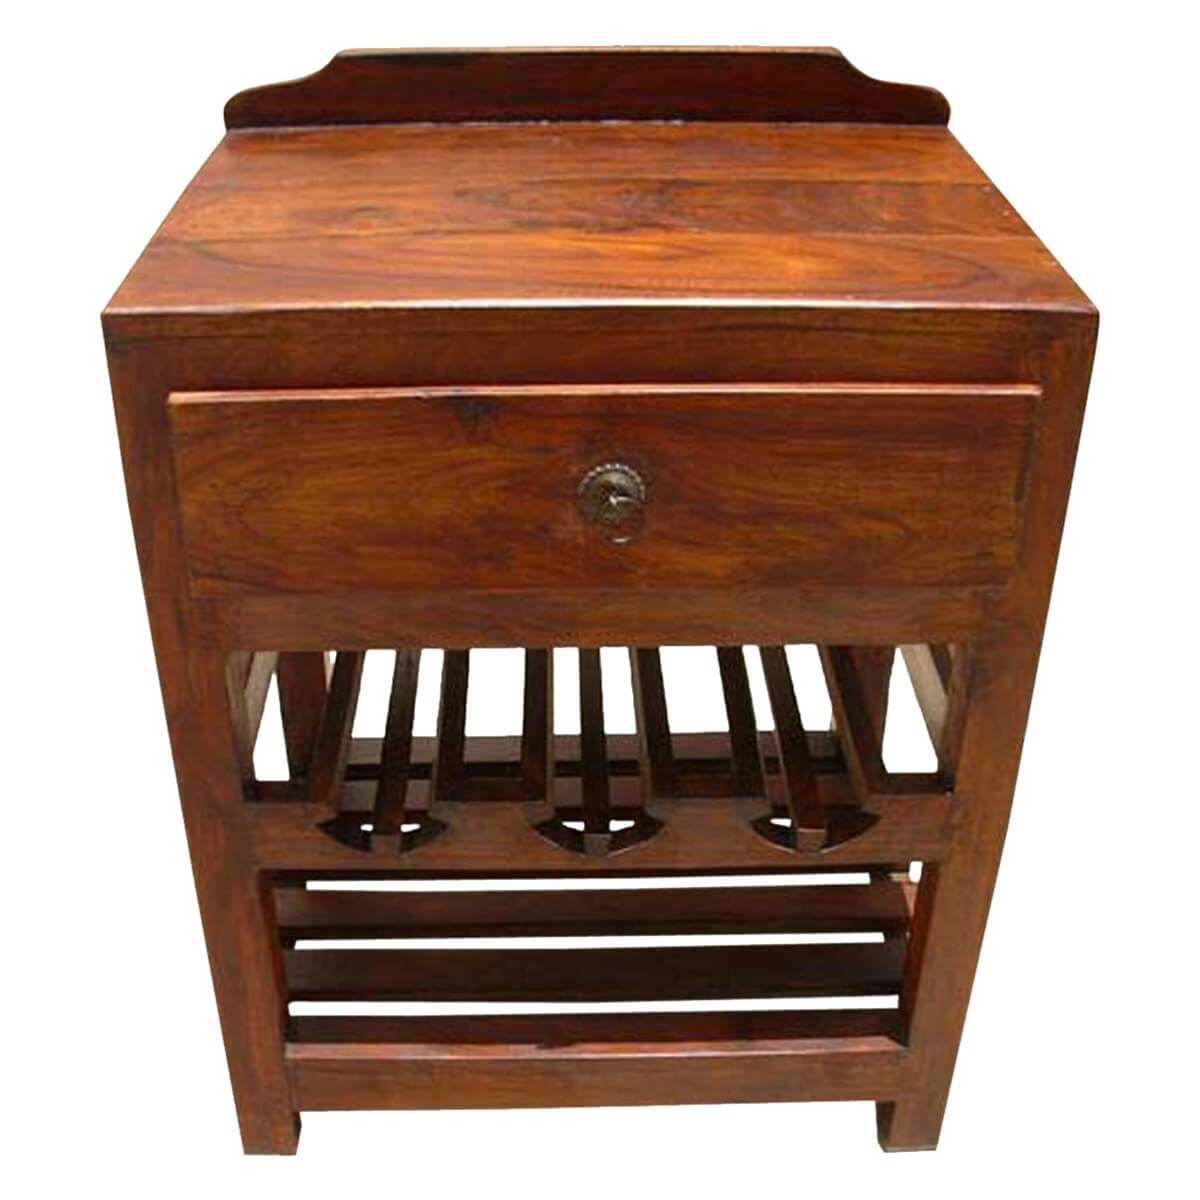 stand with shelves varela solid wood wine rack single drawer side table 2476